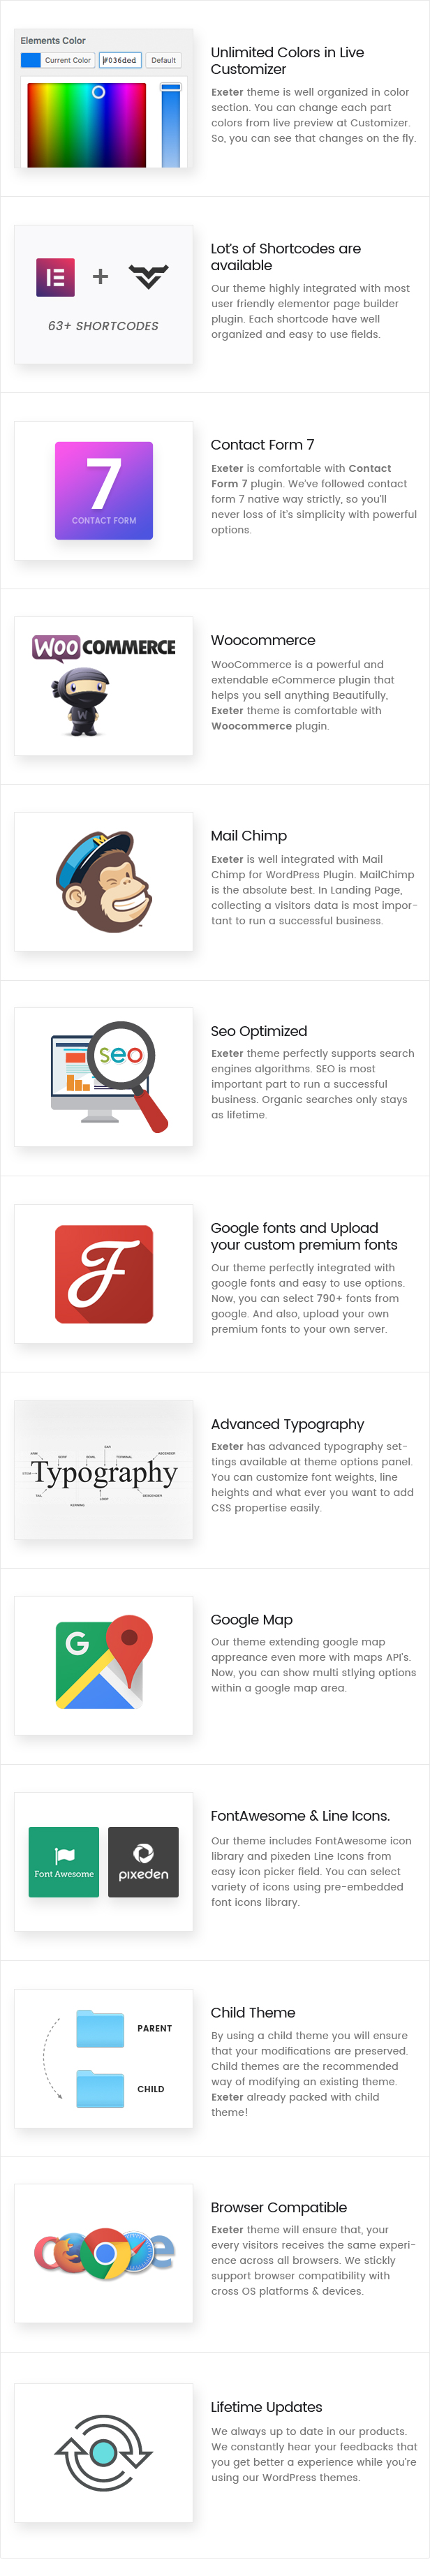 Exeter Features Exeter - Personal Portfolio WordPress Theme Nulled Free Download Exeter – Personal Portfolio WordPress Theme Nulled Free Download 3 small features